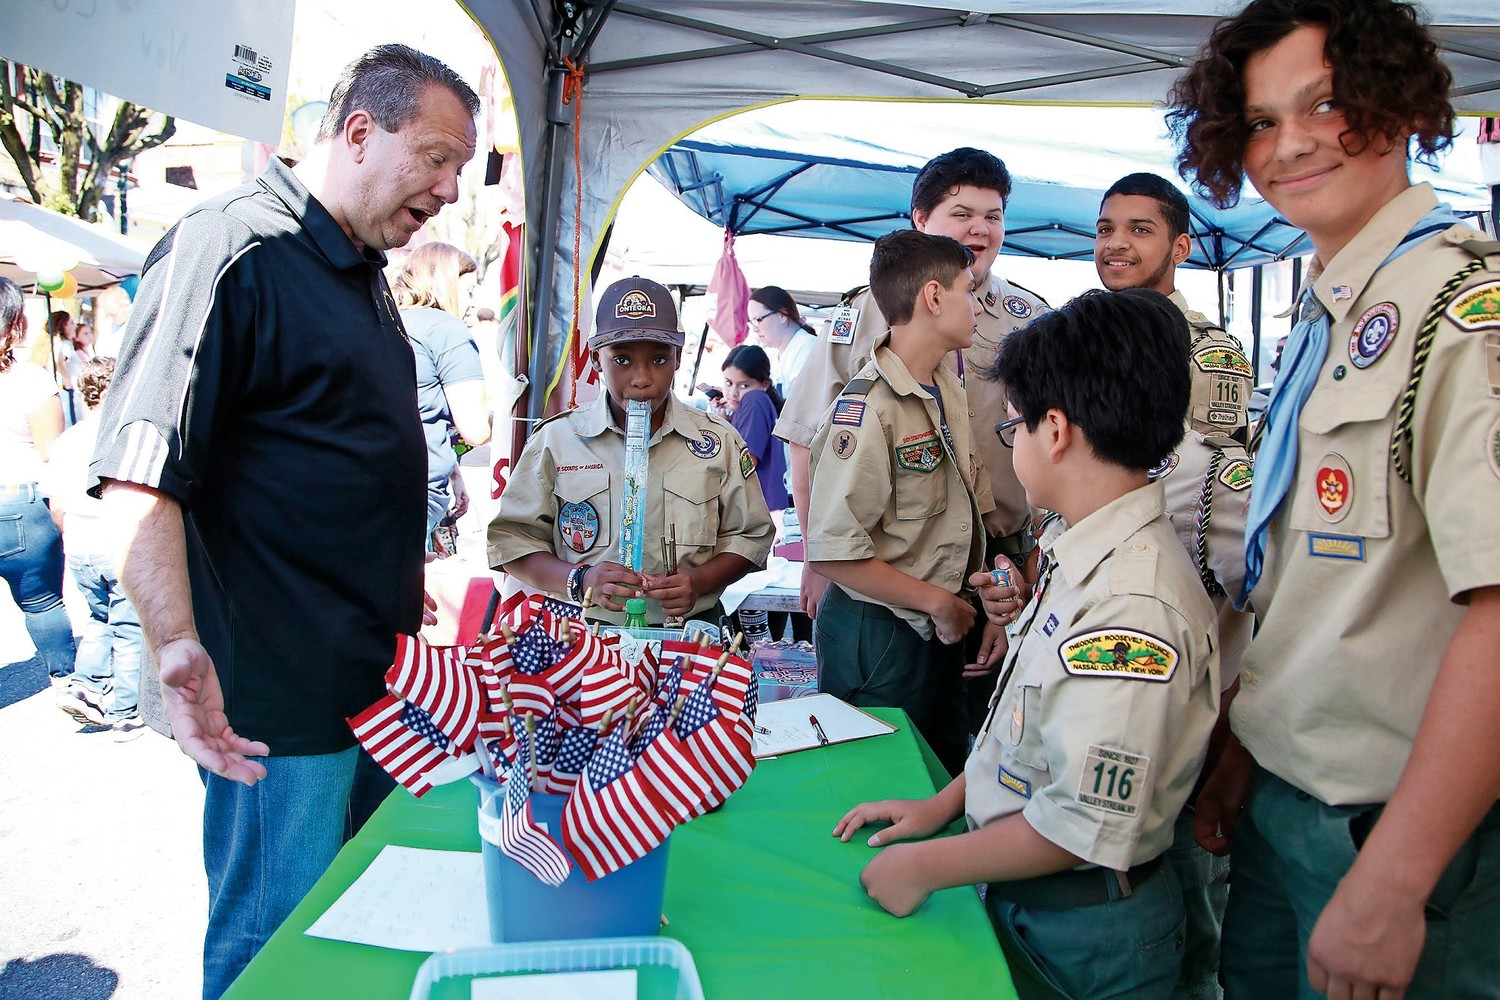 Mayor Ed Fare chatted with Troop 116 scouts.